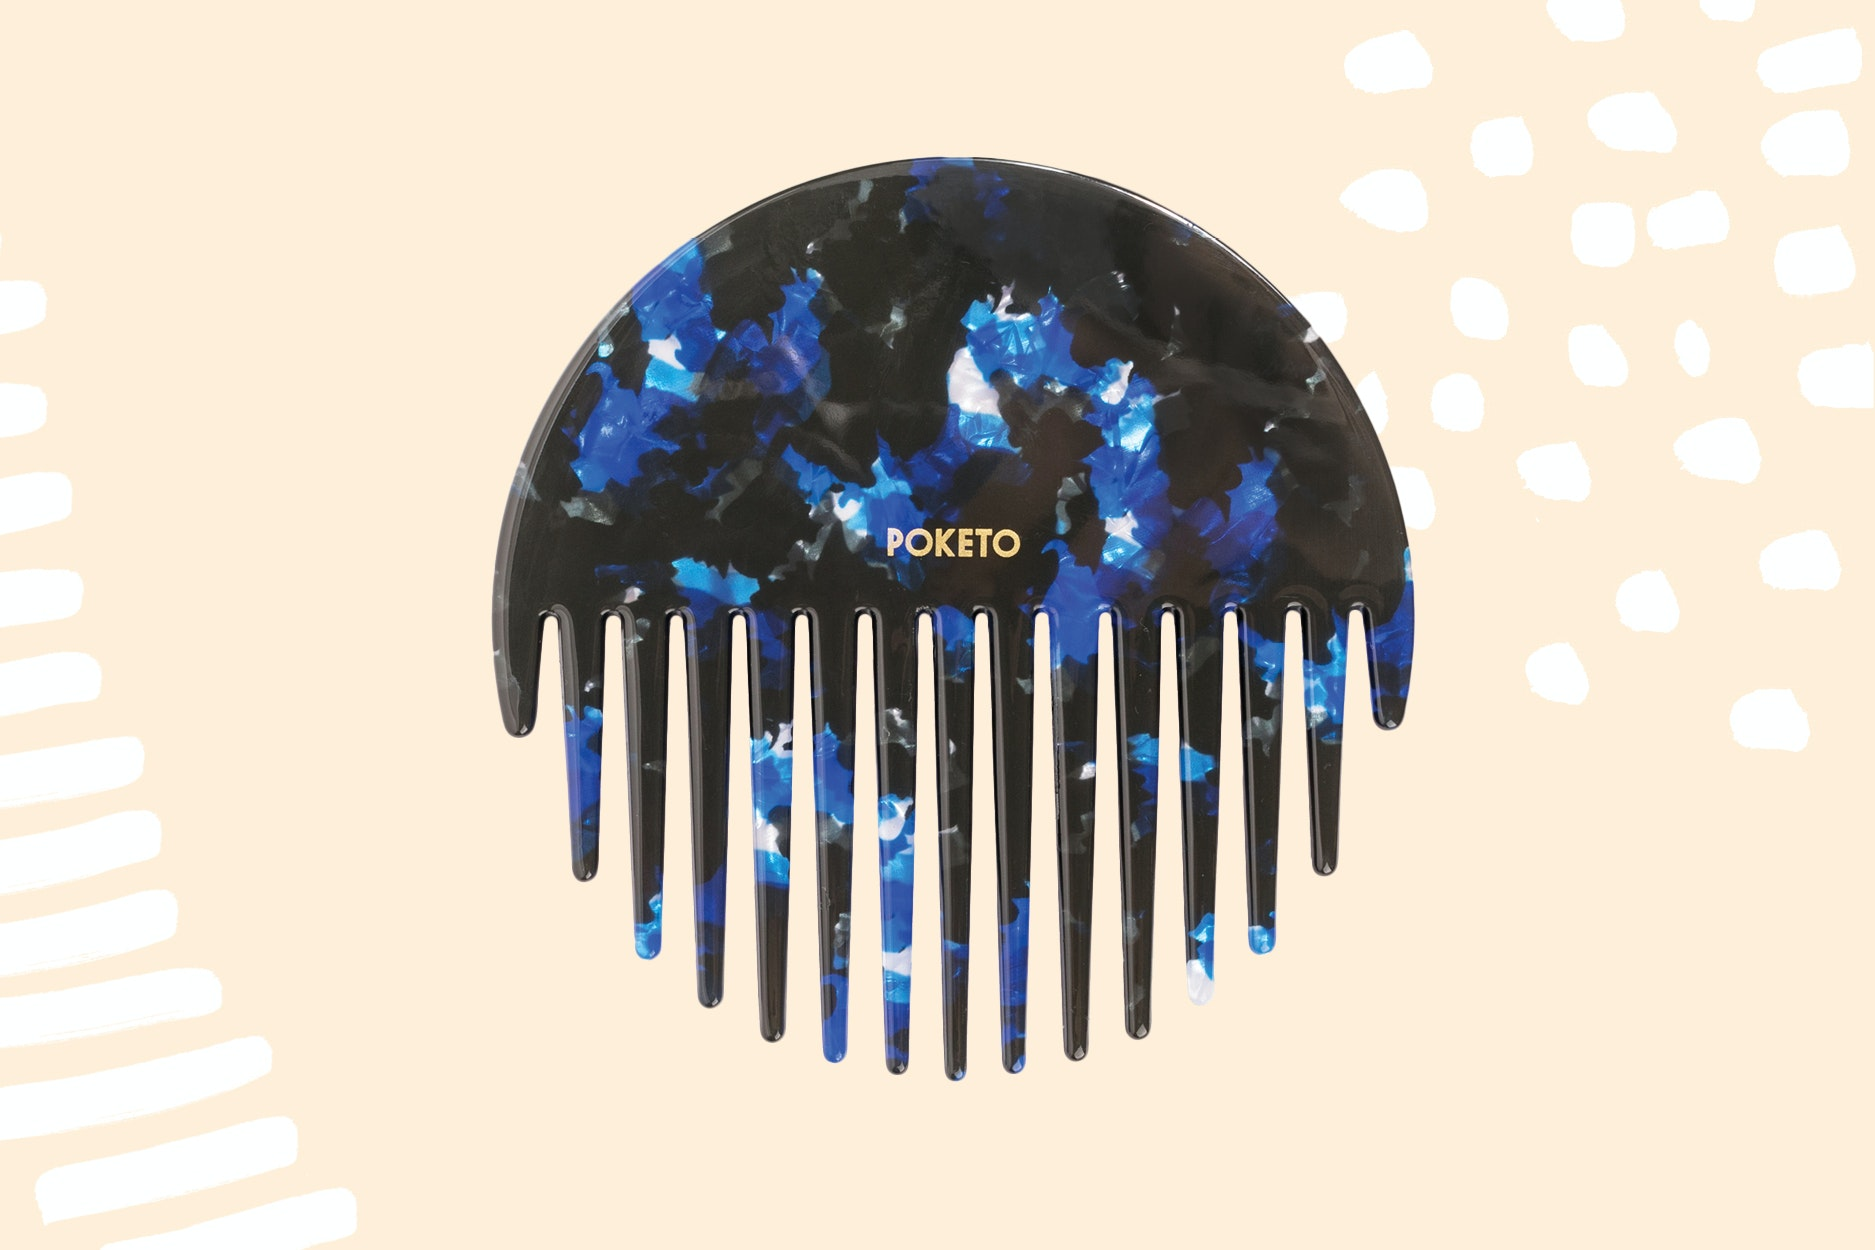 The Poketo circle comb comes in blue (pictured) and pink.